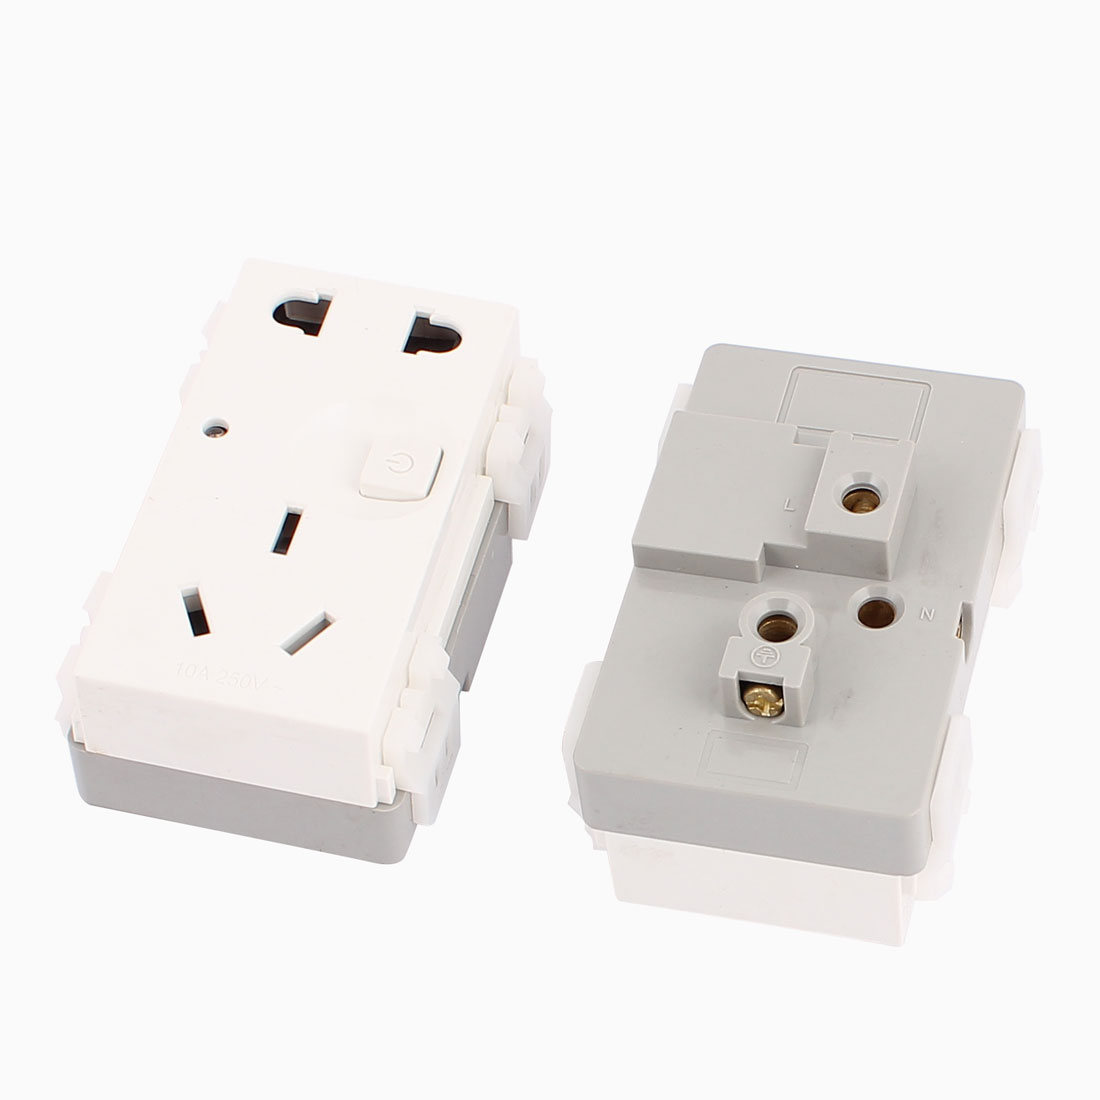 2 Pcs AC 250V 10A AU US EU Socket Electrical Switched Power Outlet for 86 Wall Plate Panel